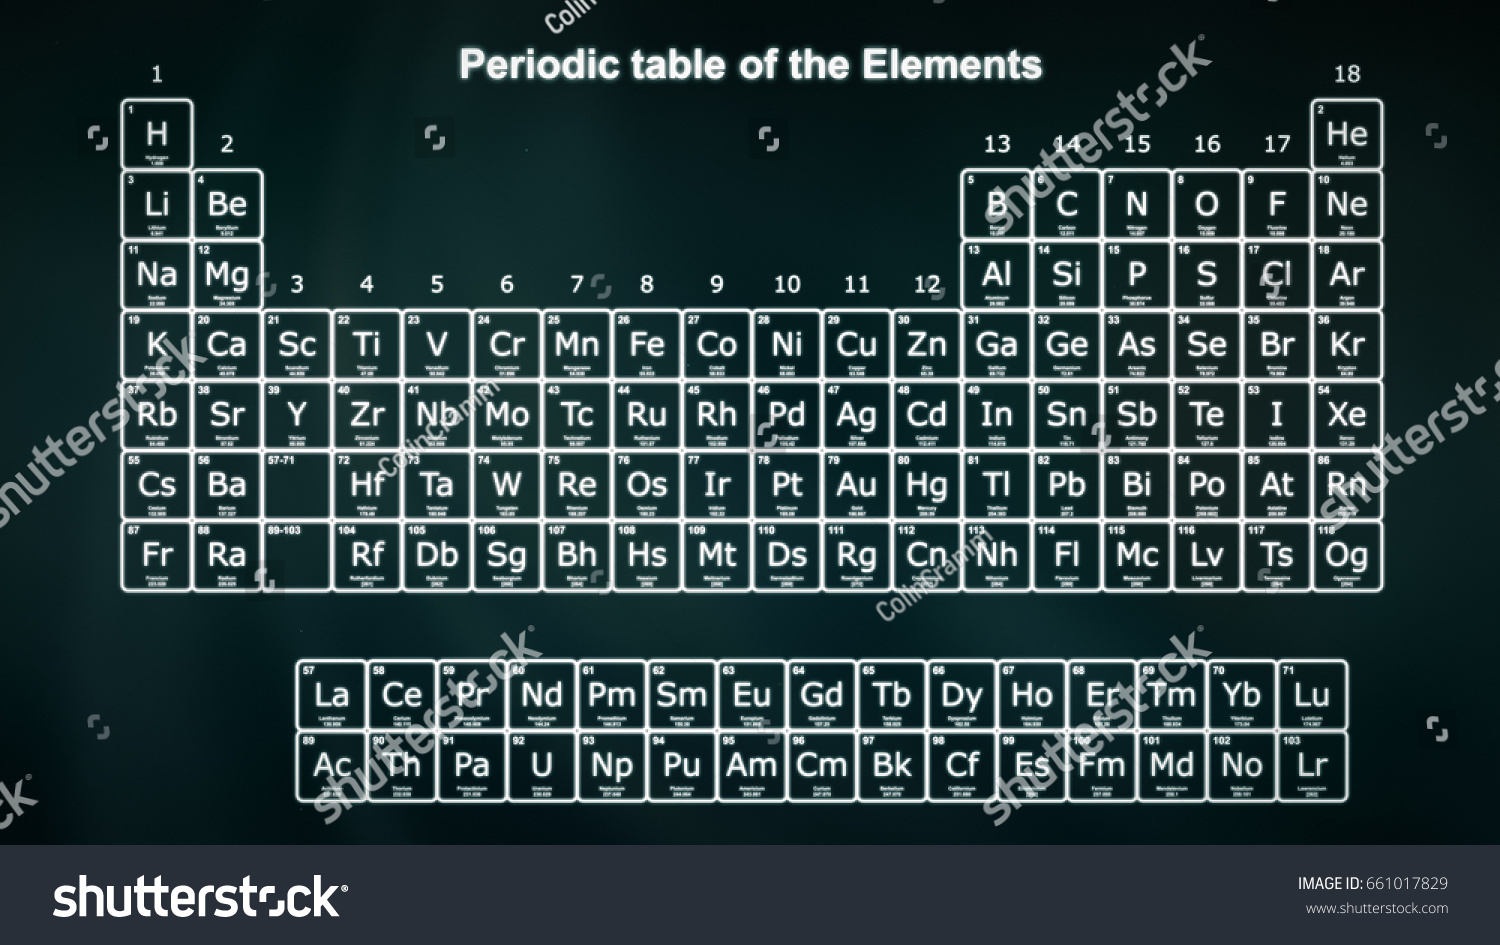 Complete periodic table elements white on stock photo 661017829 complete periodic table of the elements in white on a dark green background modern version gamestrikefo Gallery